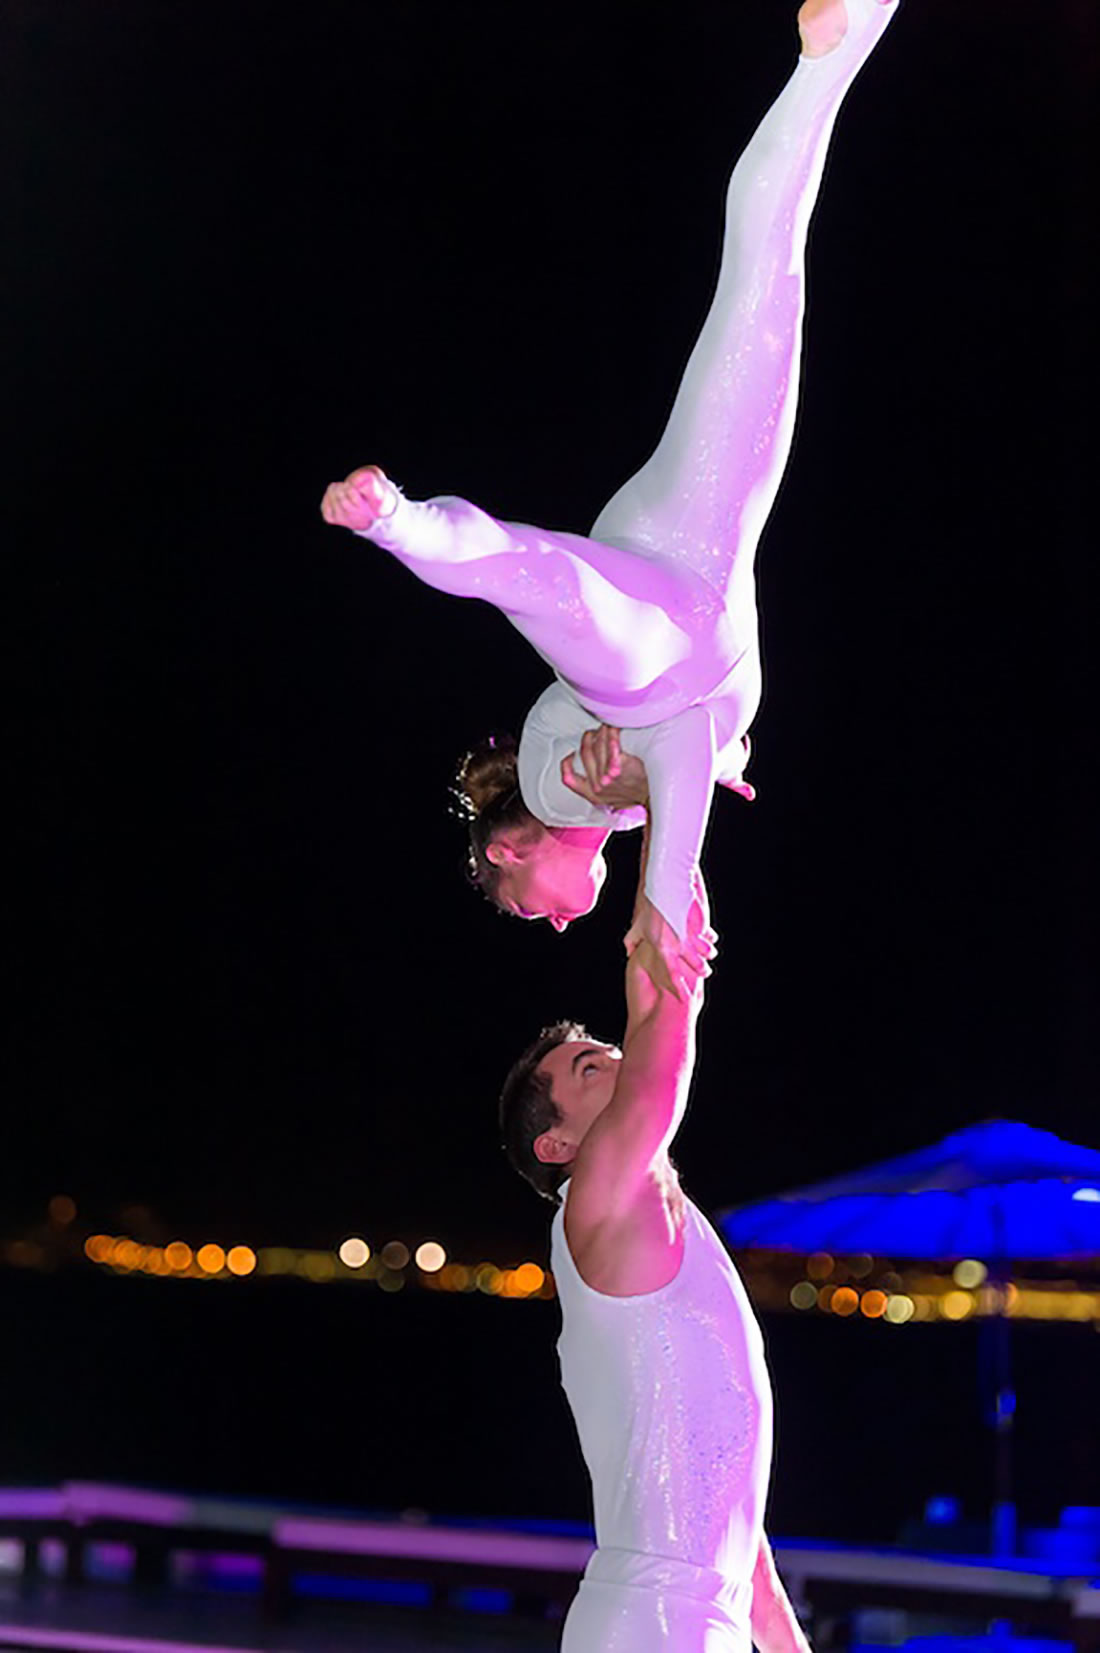 Groundbased Shows - Acrobats Gallery - Acrobatic troupe - Mallorca Intelsat 2